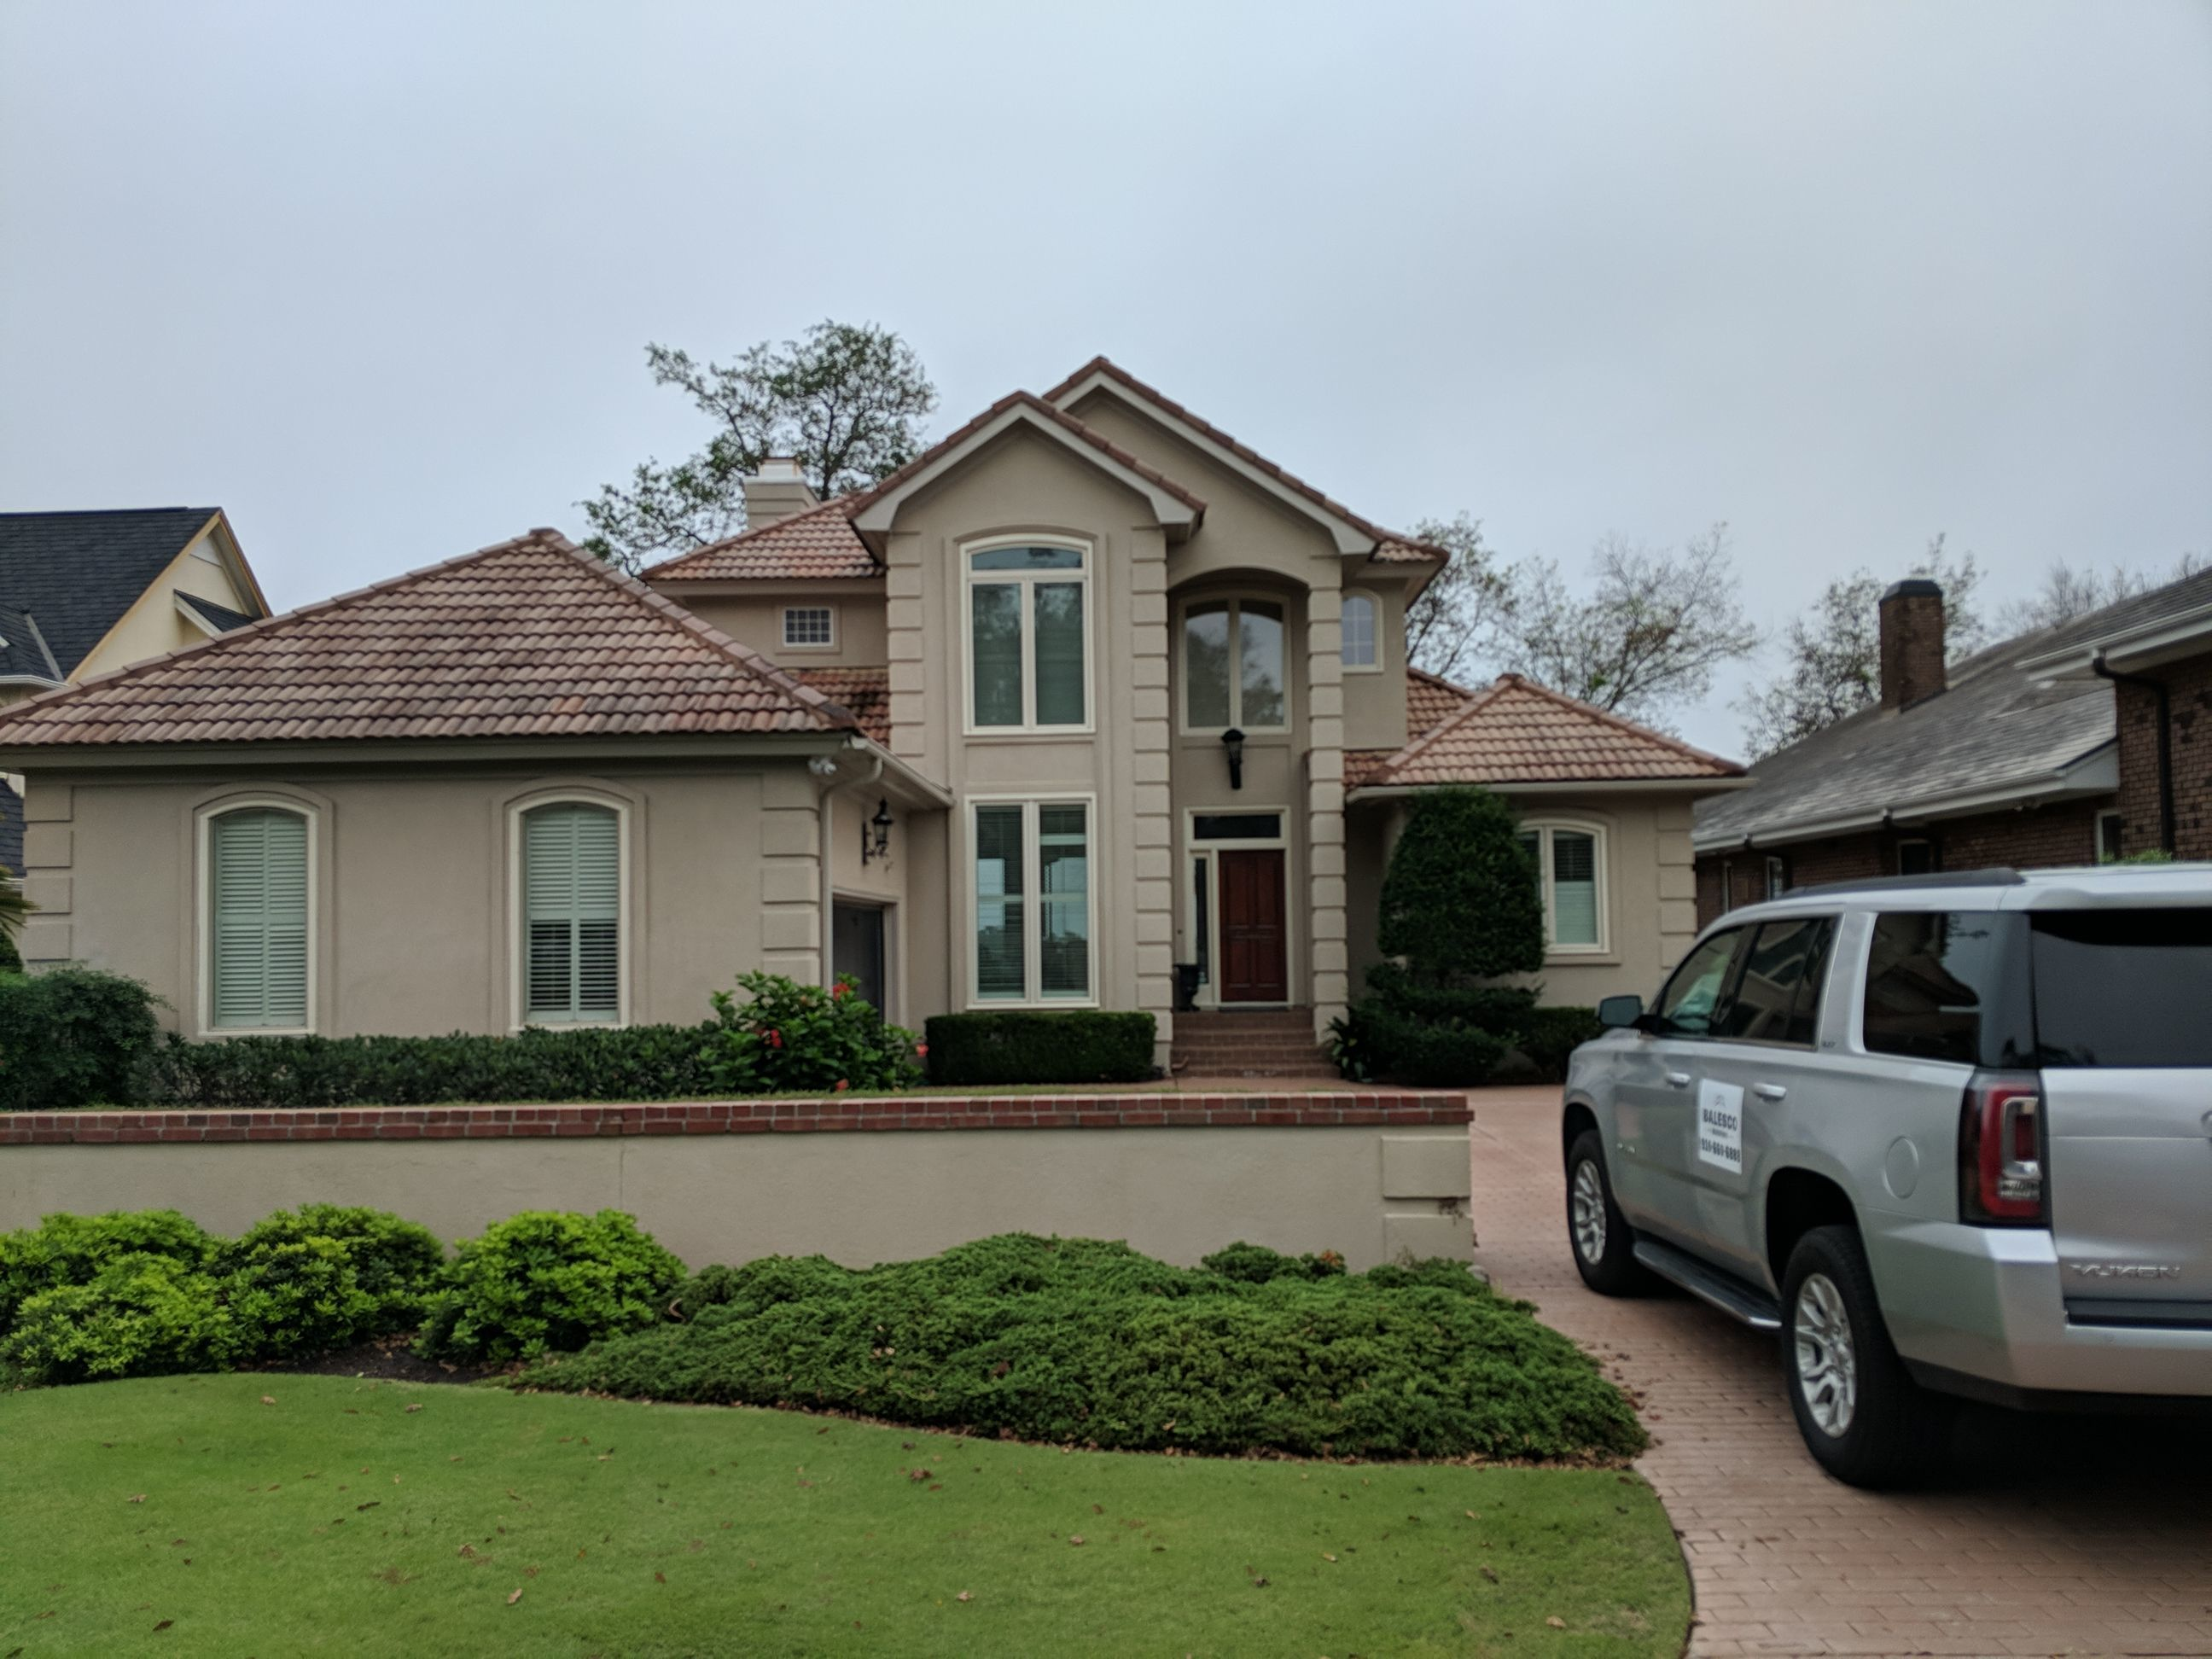 Bales Roofing Boral Roof Tile Installation Landfall Willmignton